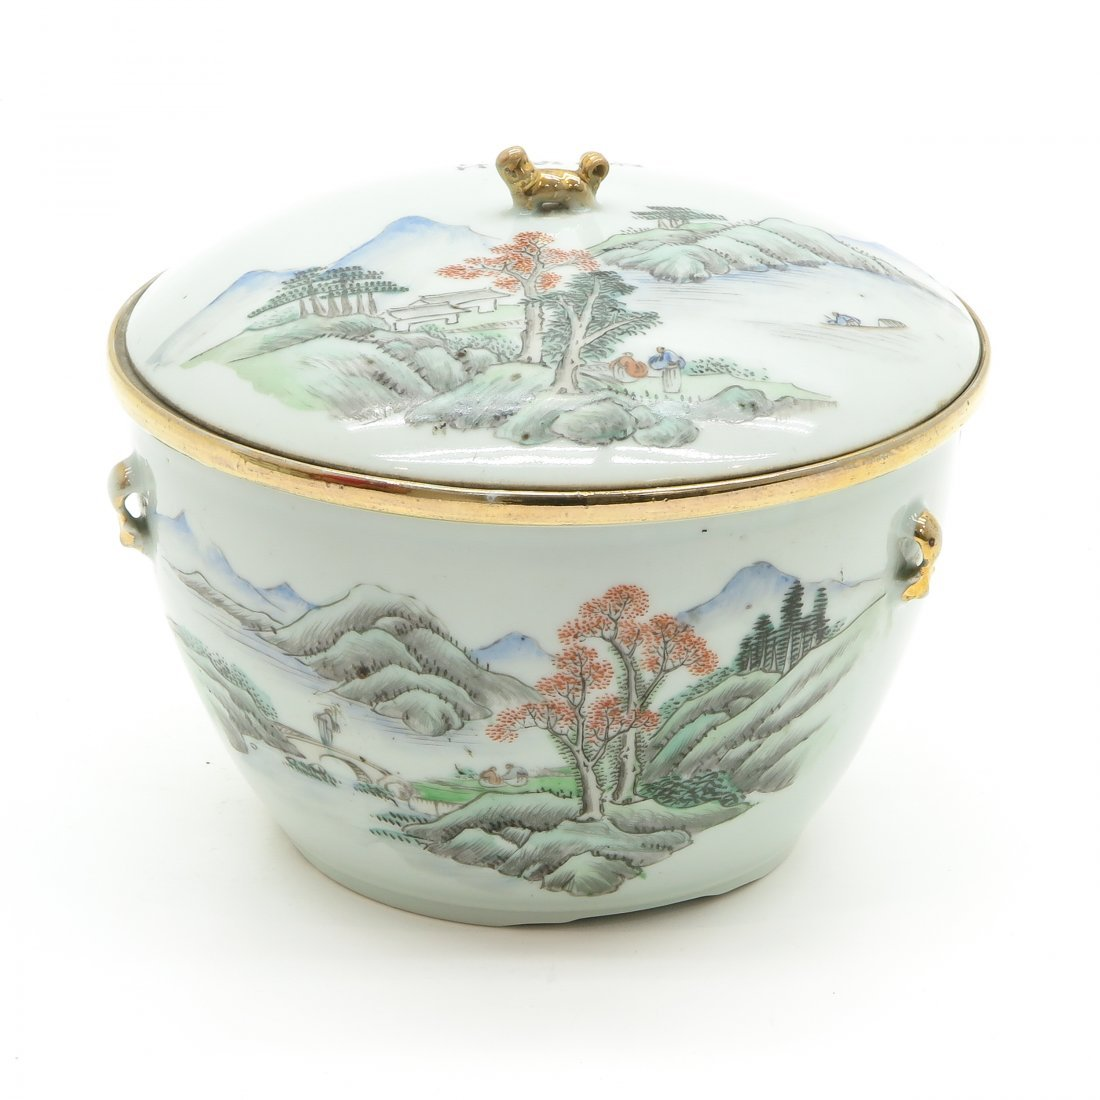 China Porcelain Lidded Dish